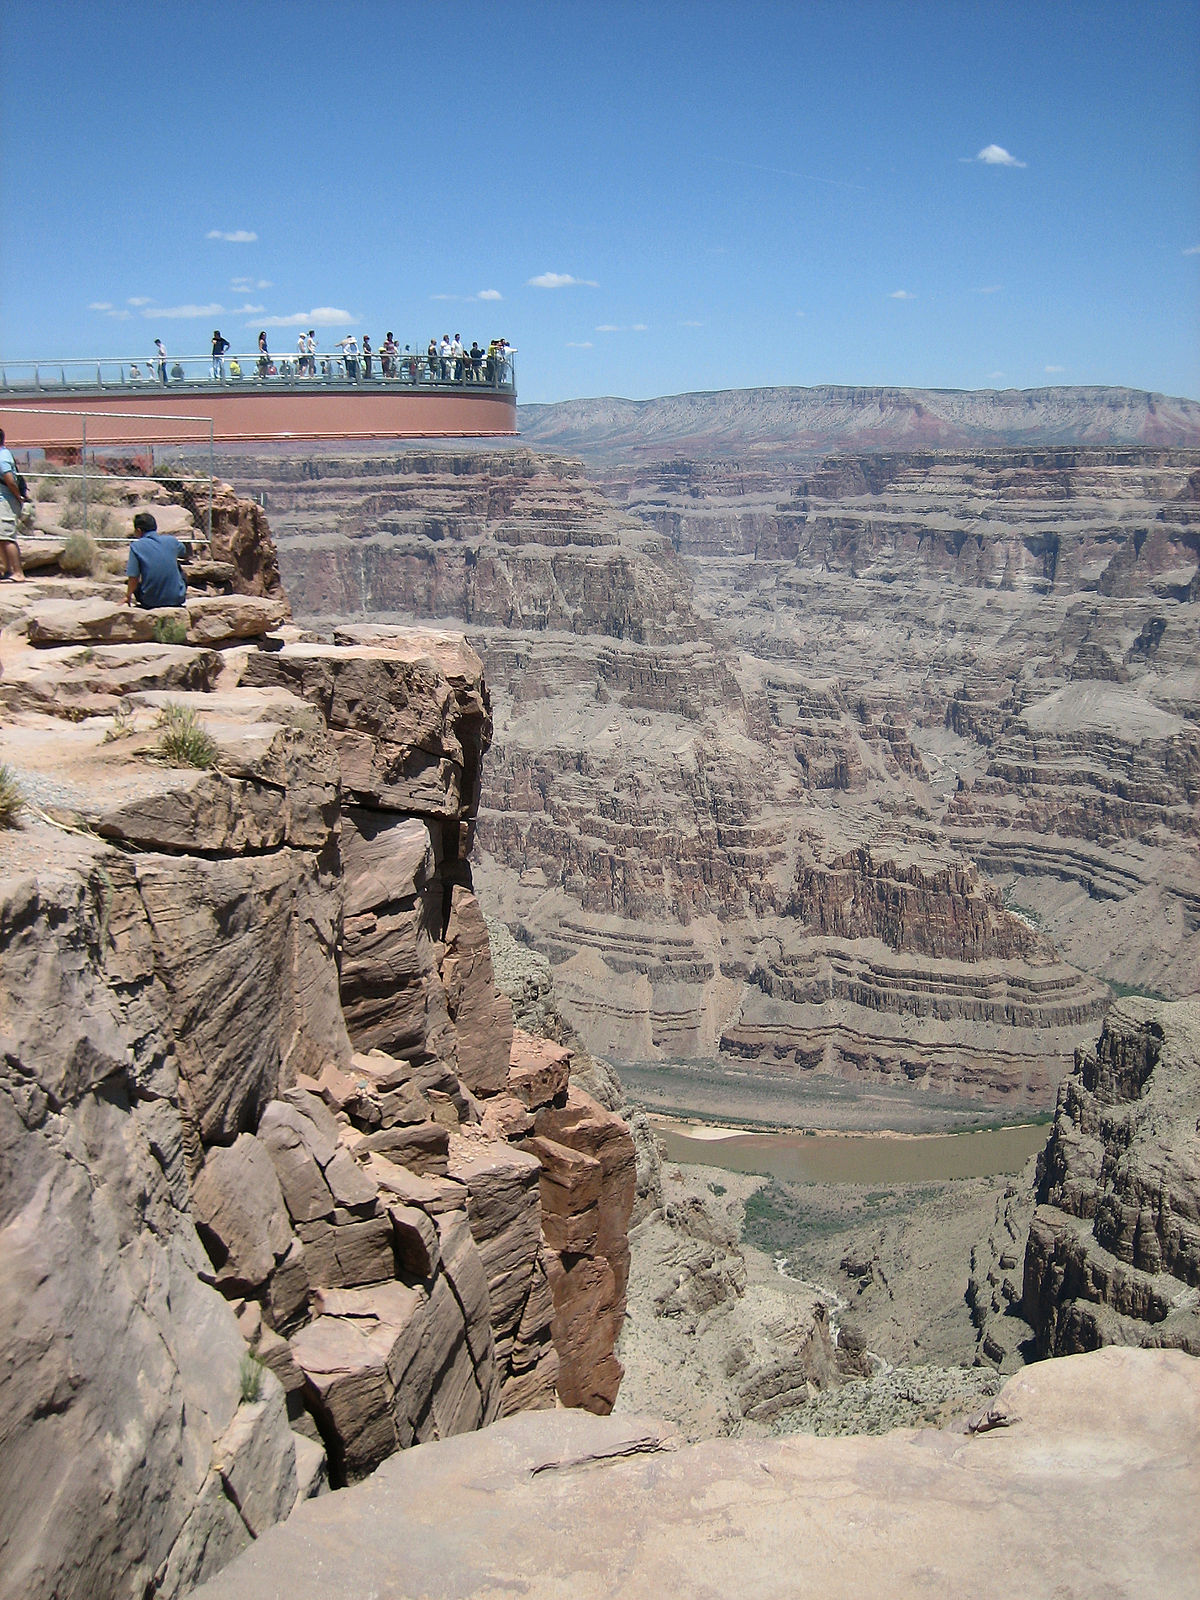 grand canyon skywalk wikipedia. Black Bedroom Furniture Sets. Home Design Ideas